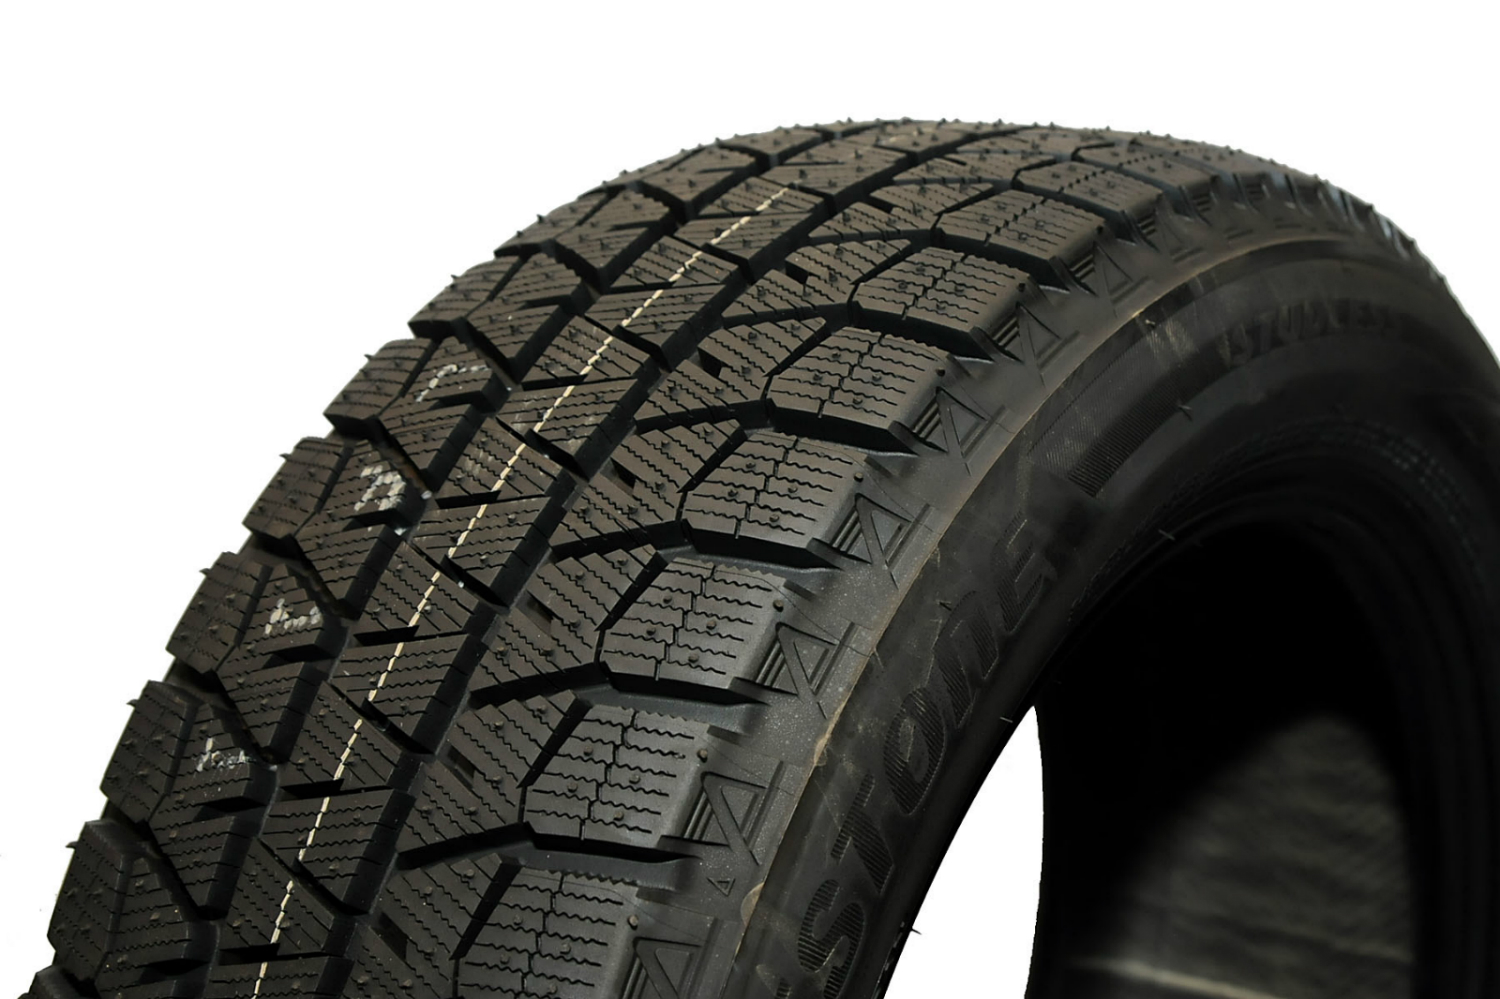 Michelin Defender Review >> Car Tires Reviews On Goodyear Michelin Youtube | Upcomingcarshq.com